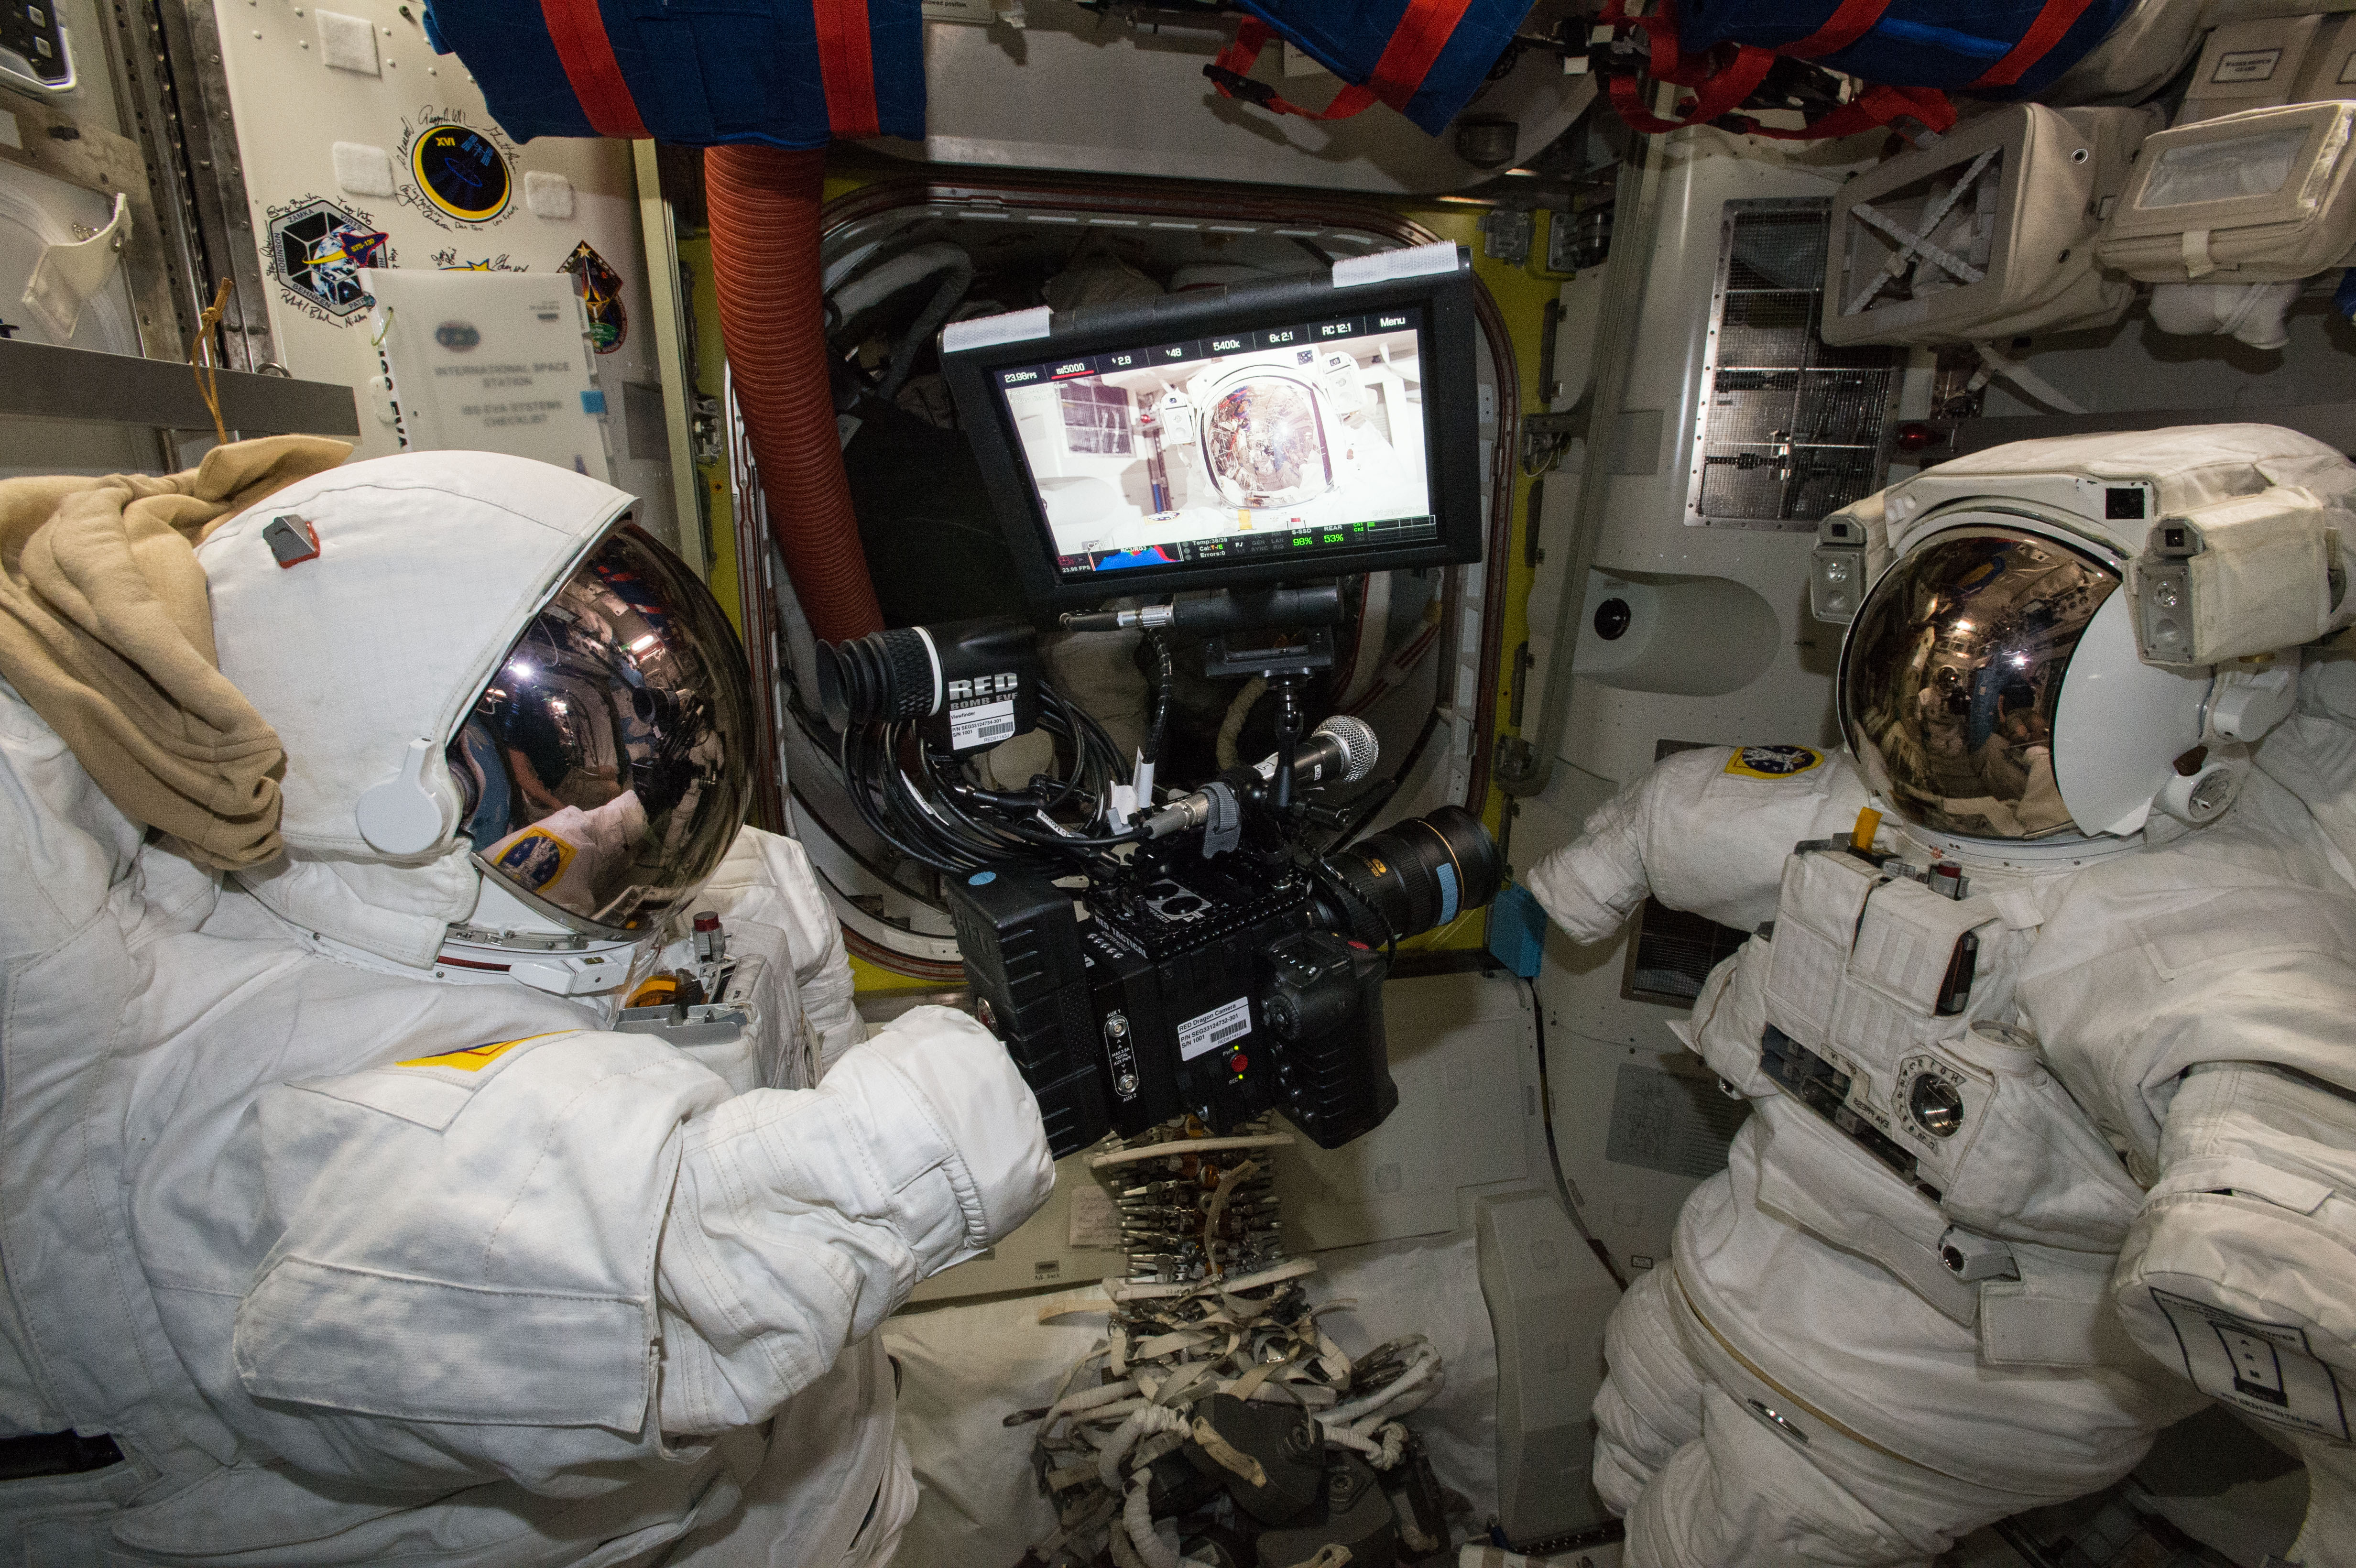 RED Epic Dragon Camera Captures Riveting Images on Space Station | NASA